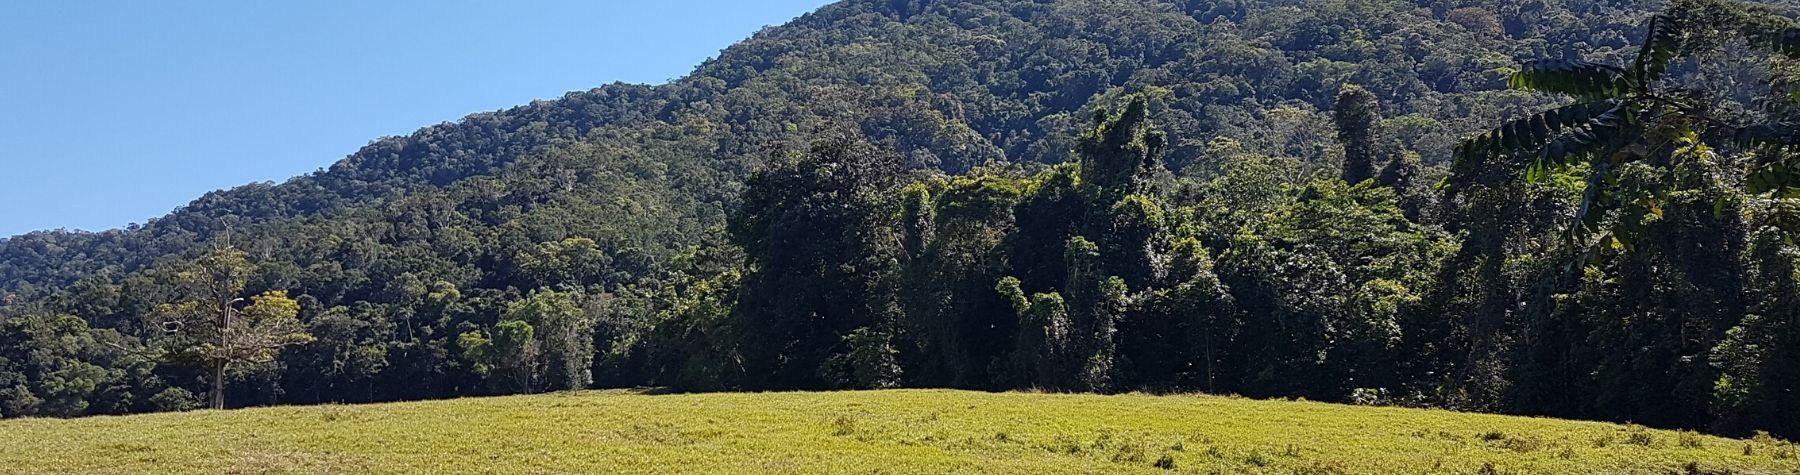 Community group to manage Daintree project